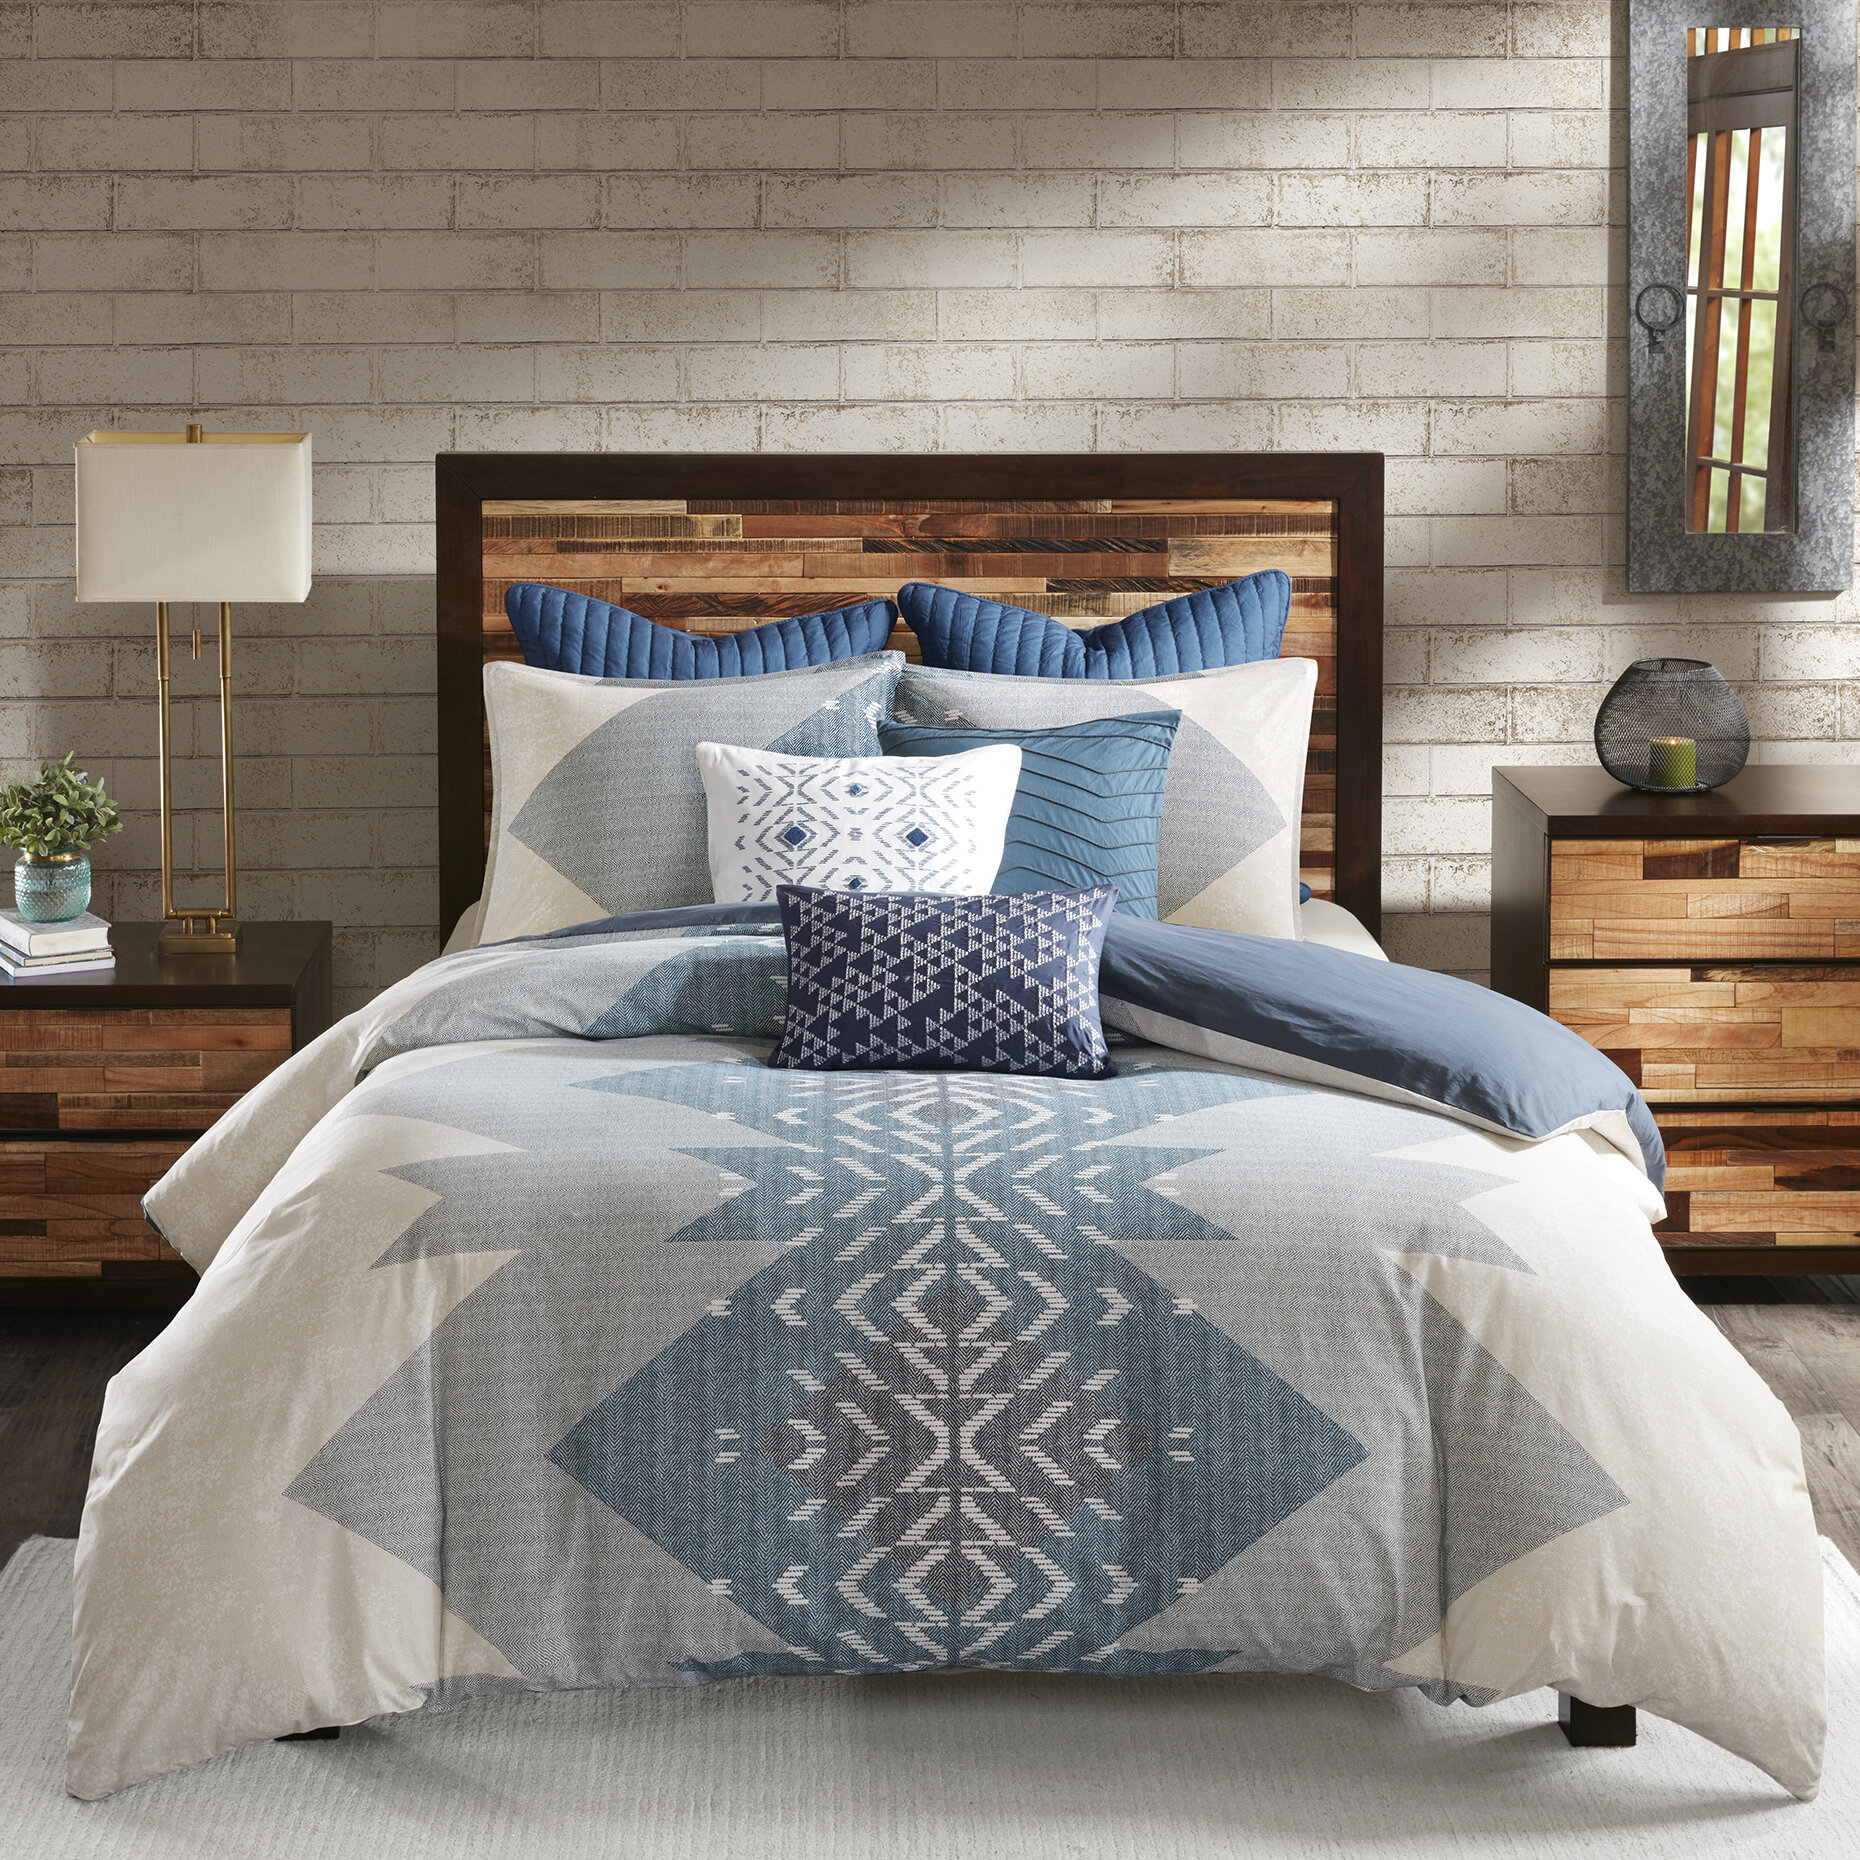 Boho King Size Duvet Covers Sets You Ll Love In 2021 Wayfair